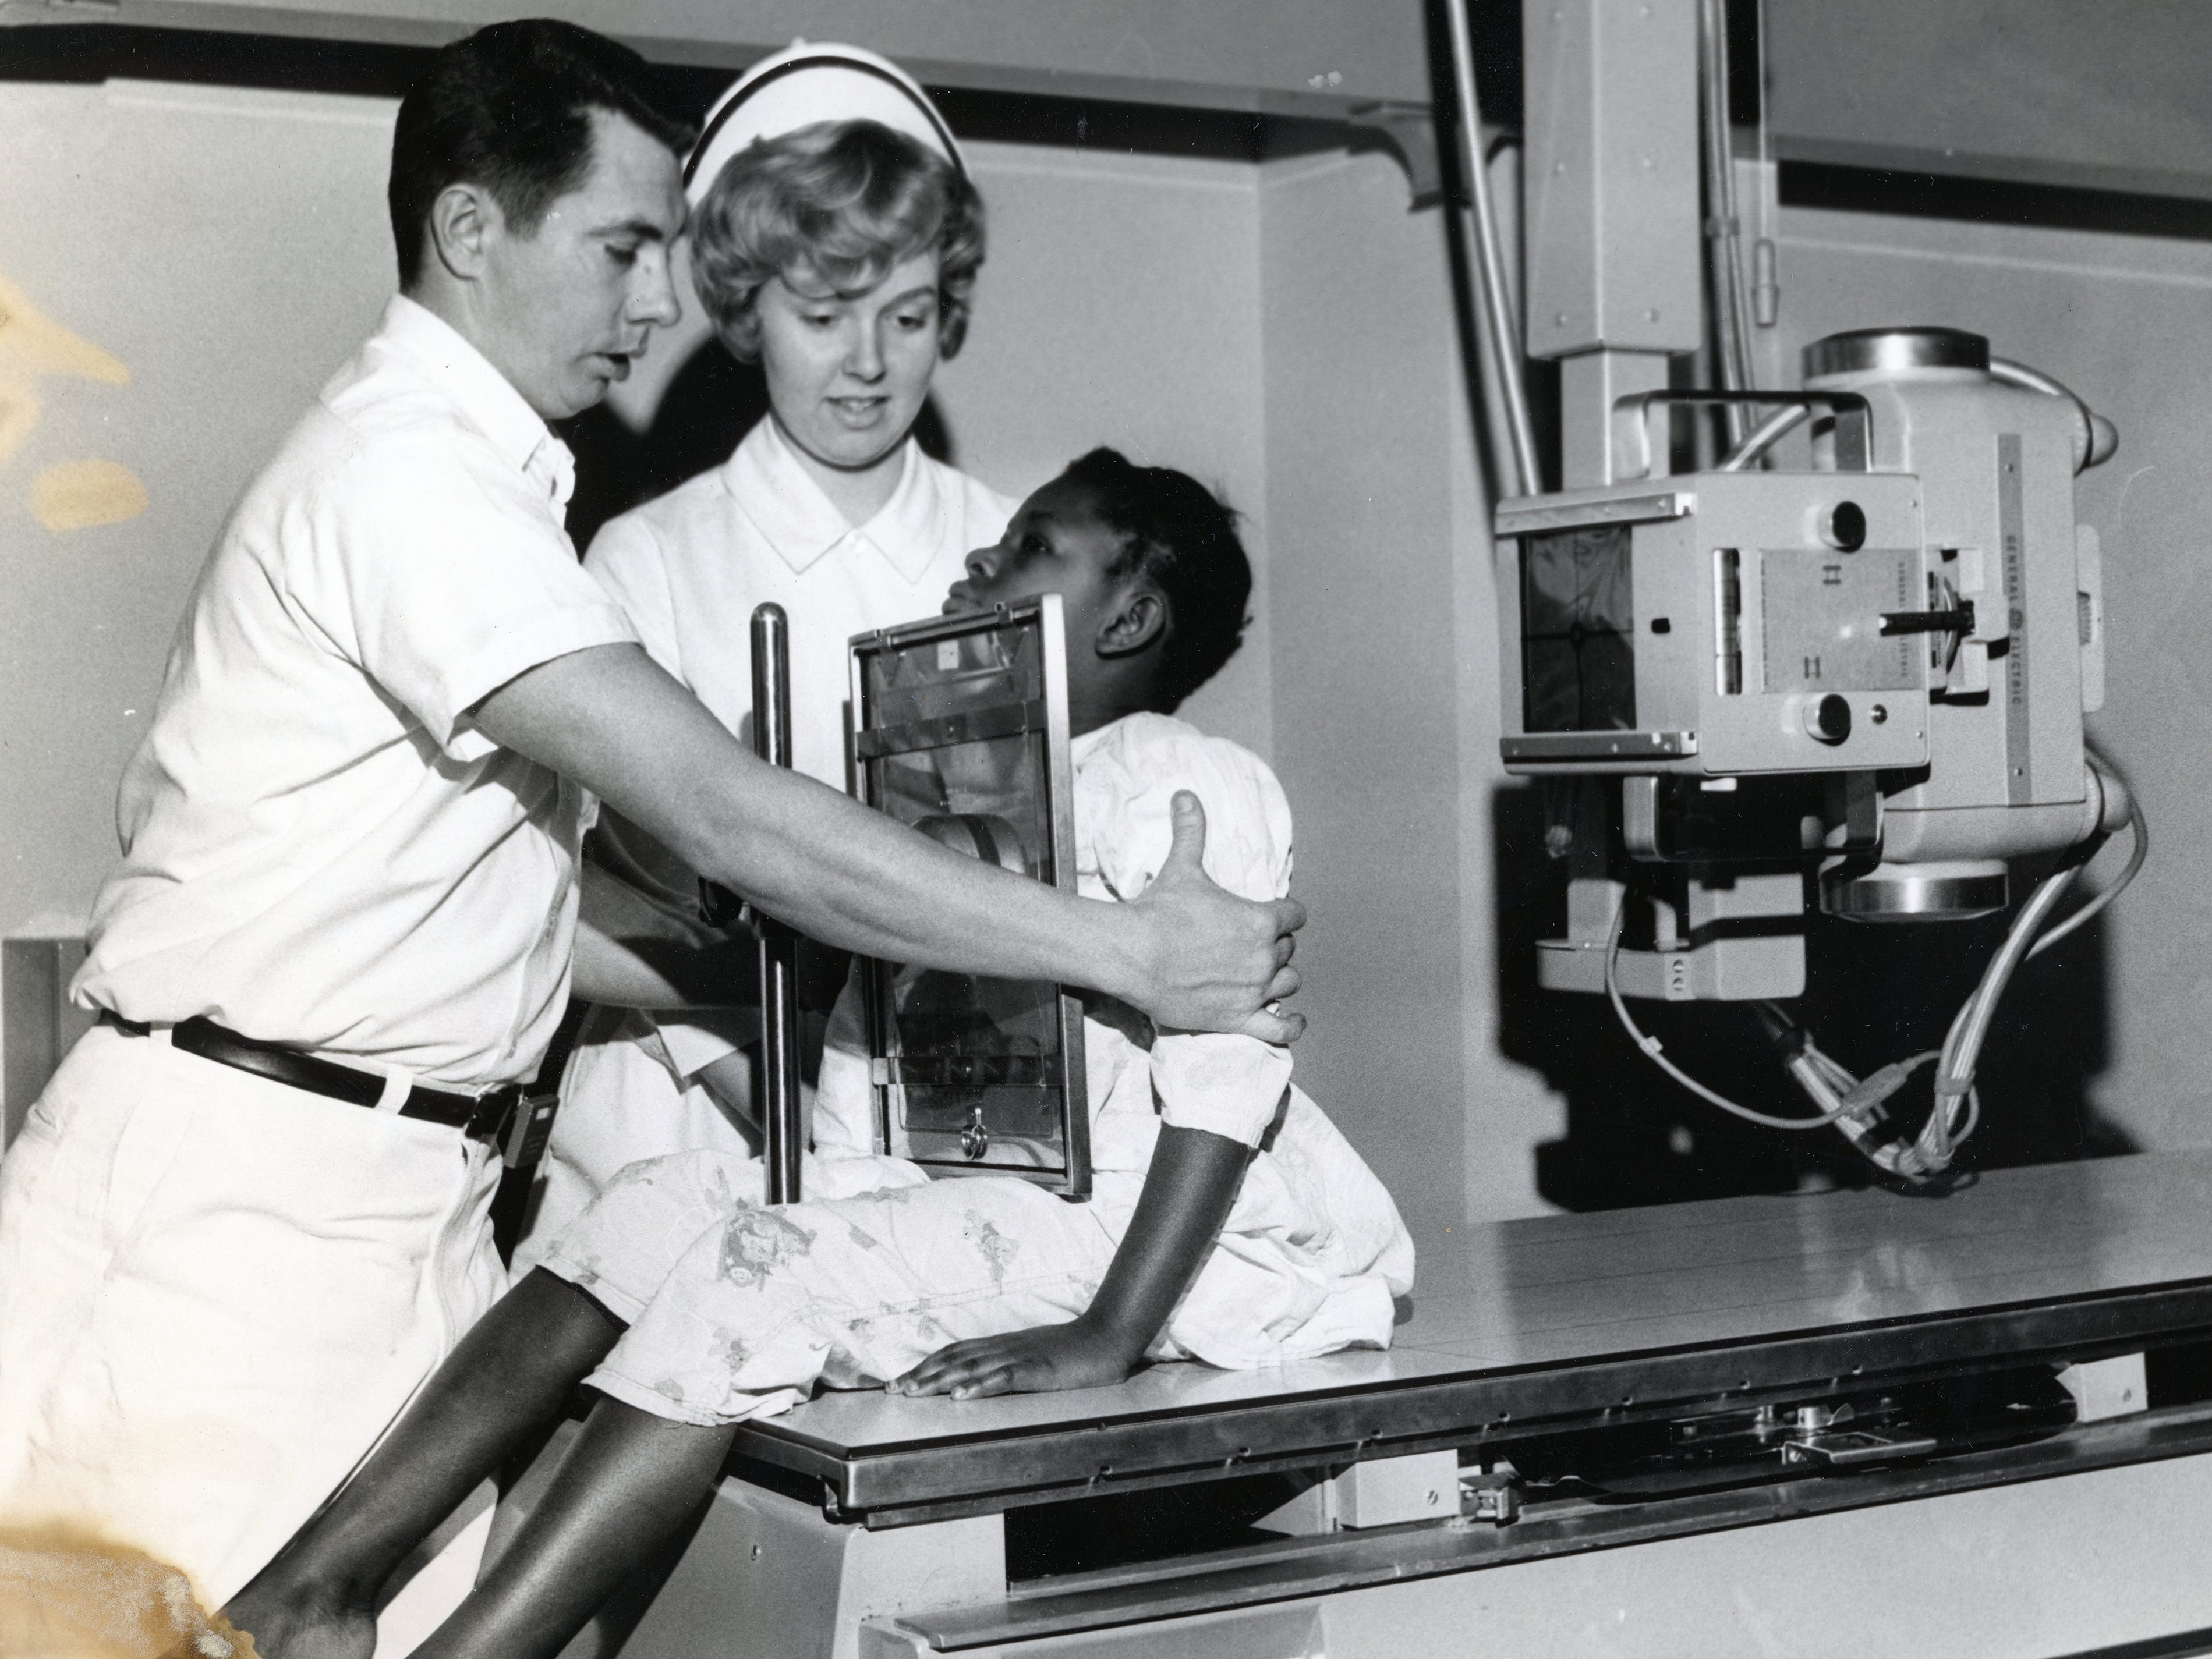 X-ray technologist Nick Slater and nurse Margaret Shanks work with patient Marilyn Duncan at St. Mary's Hospital in December 1966.